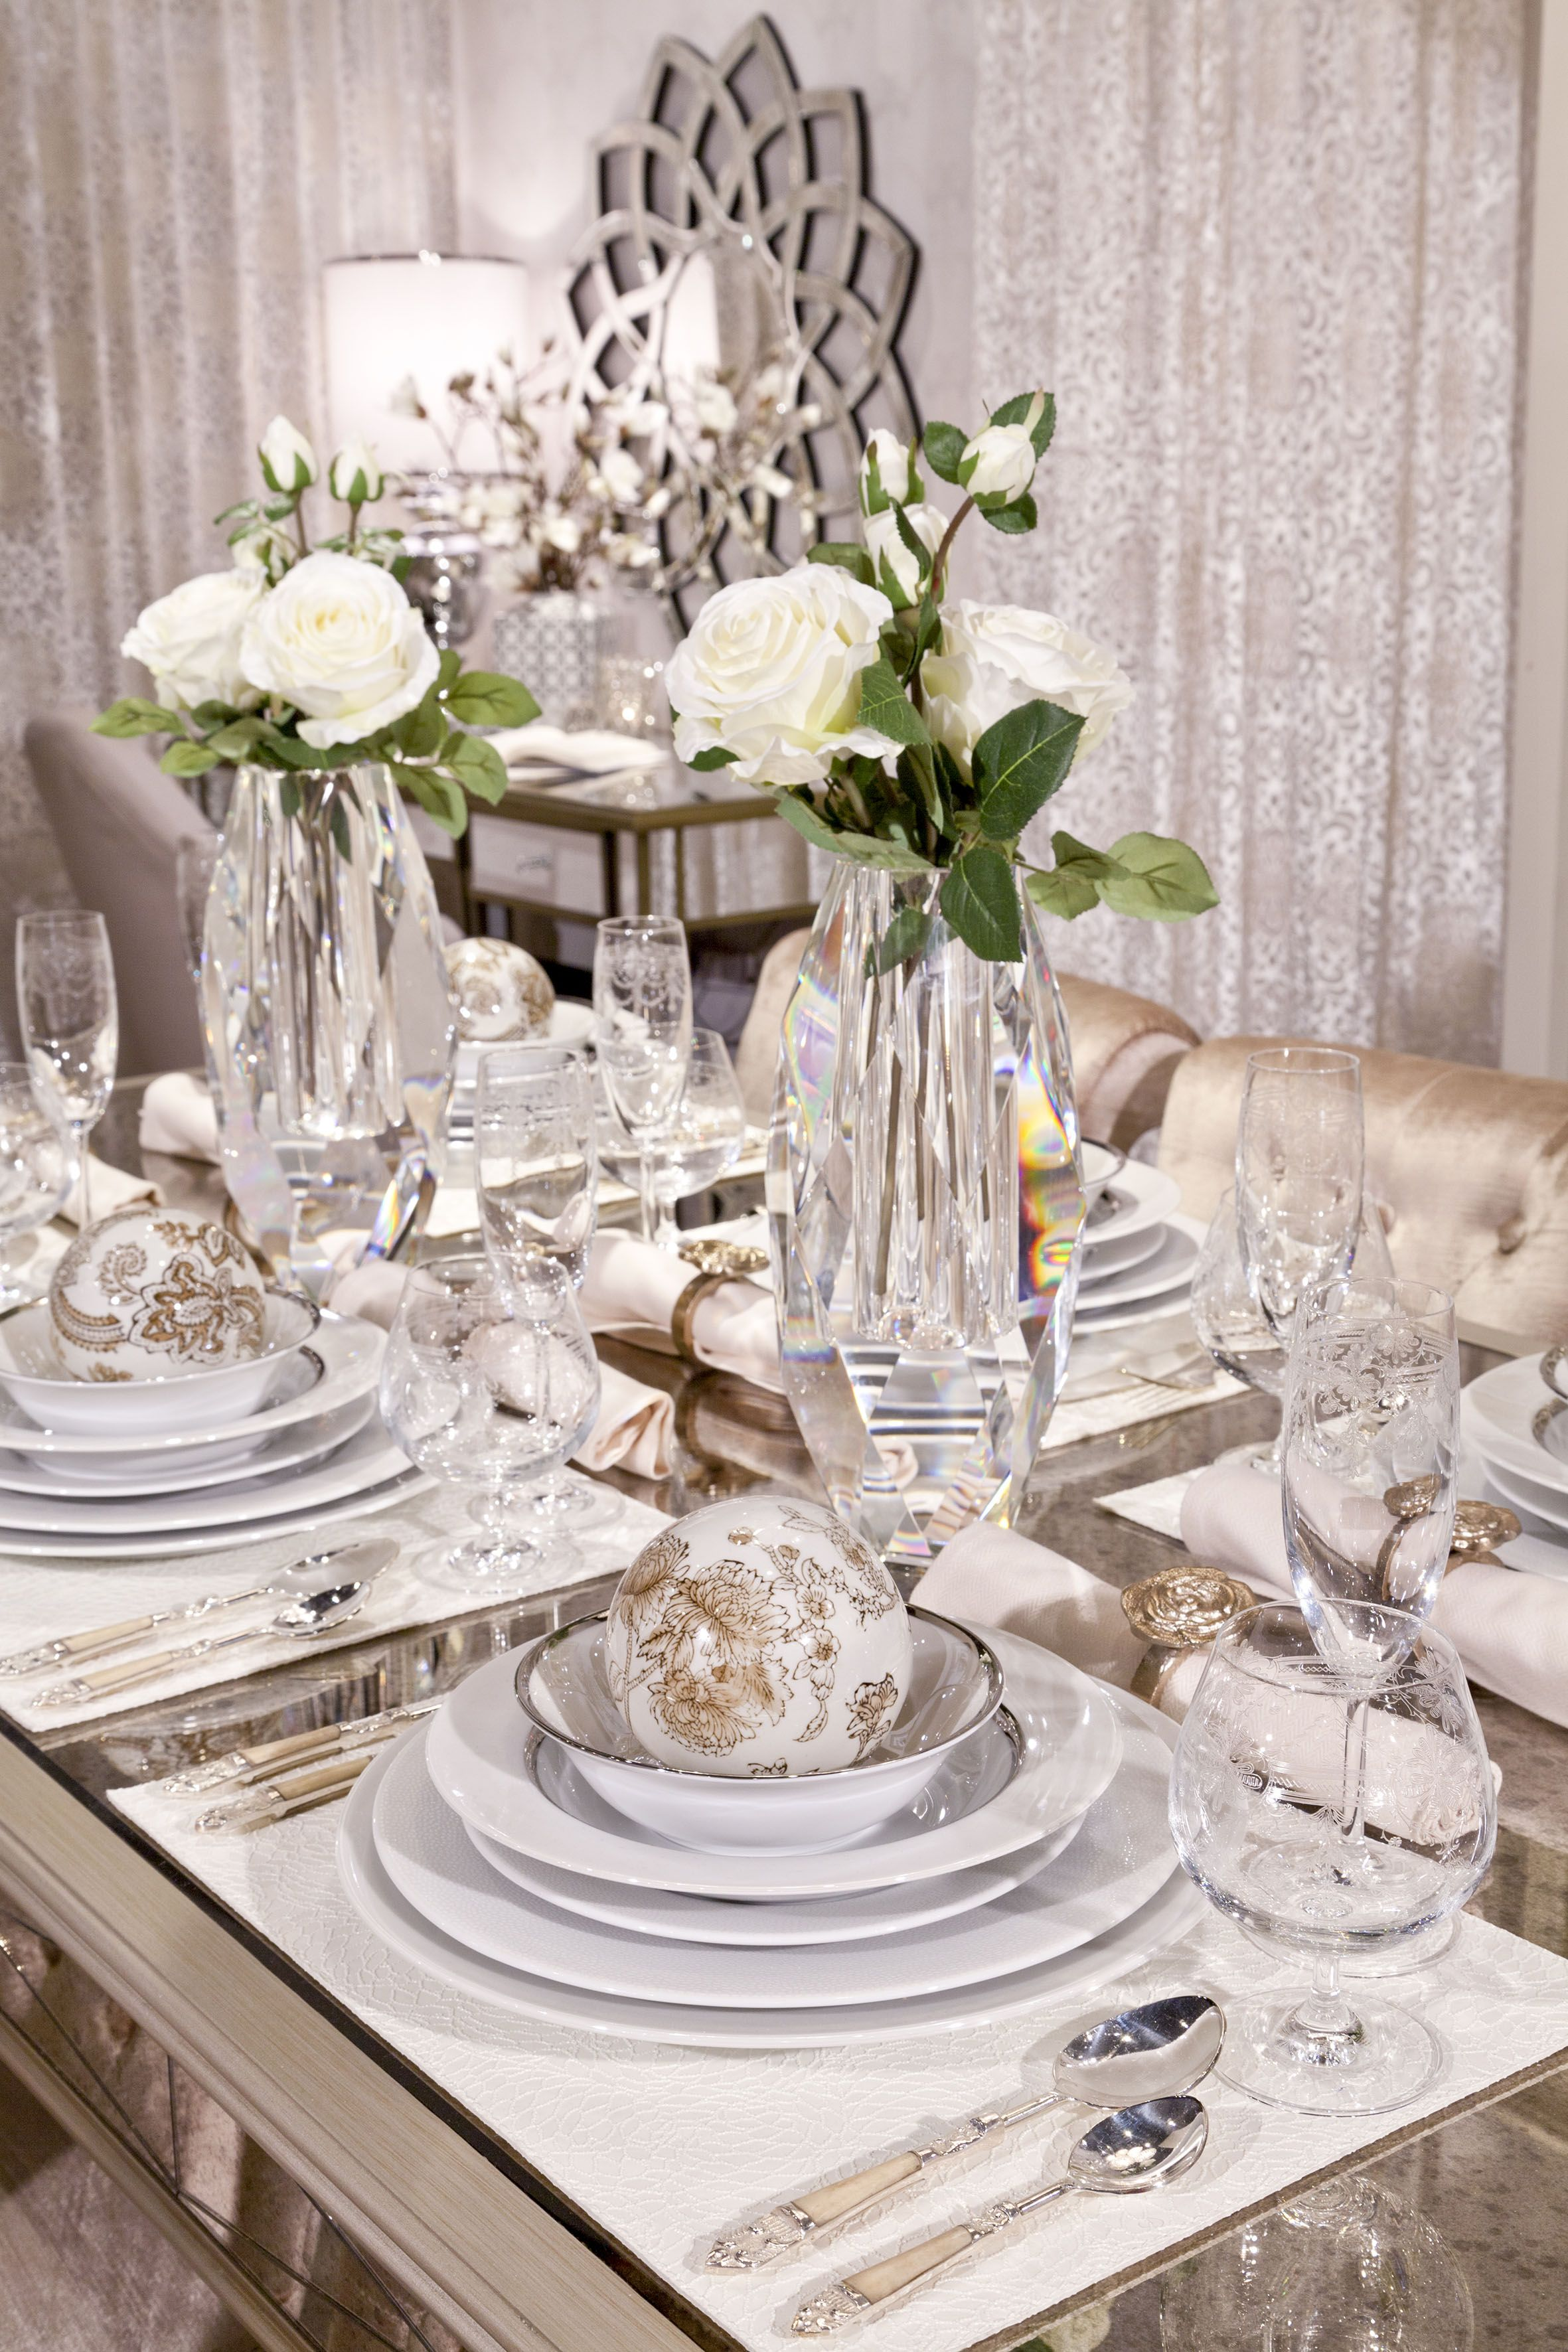 Dining Opulent Antique Mirrored Dining Table Served With Silver